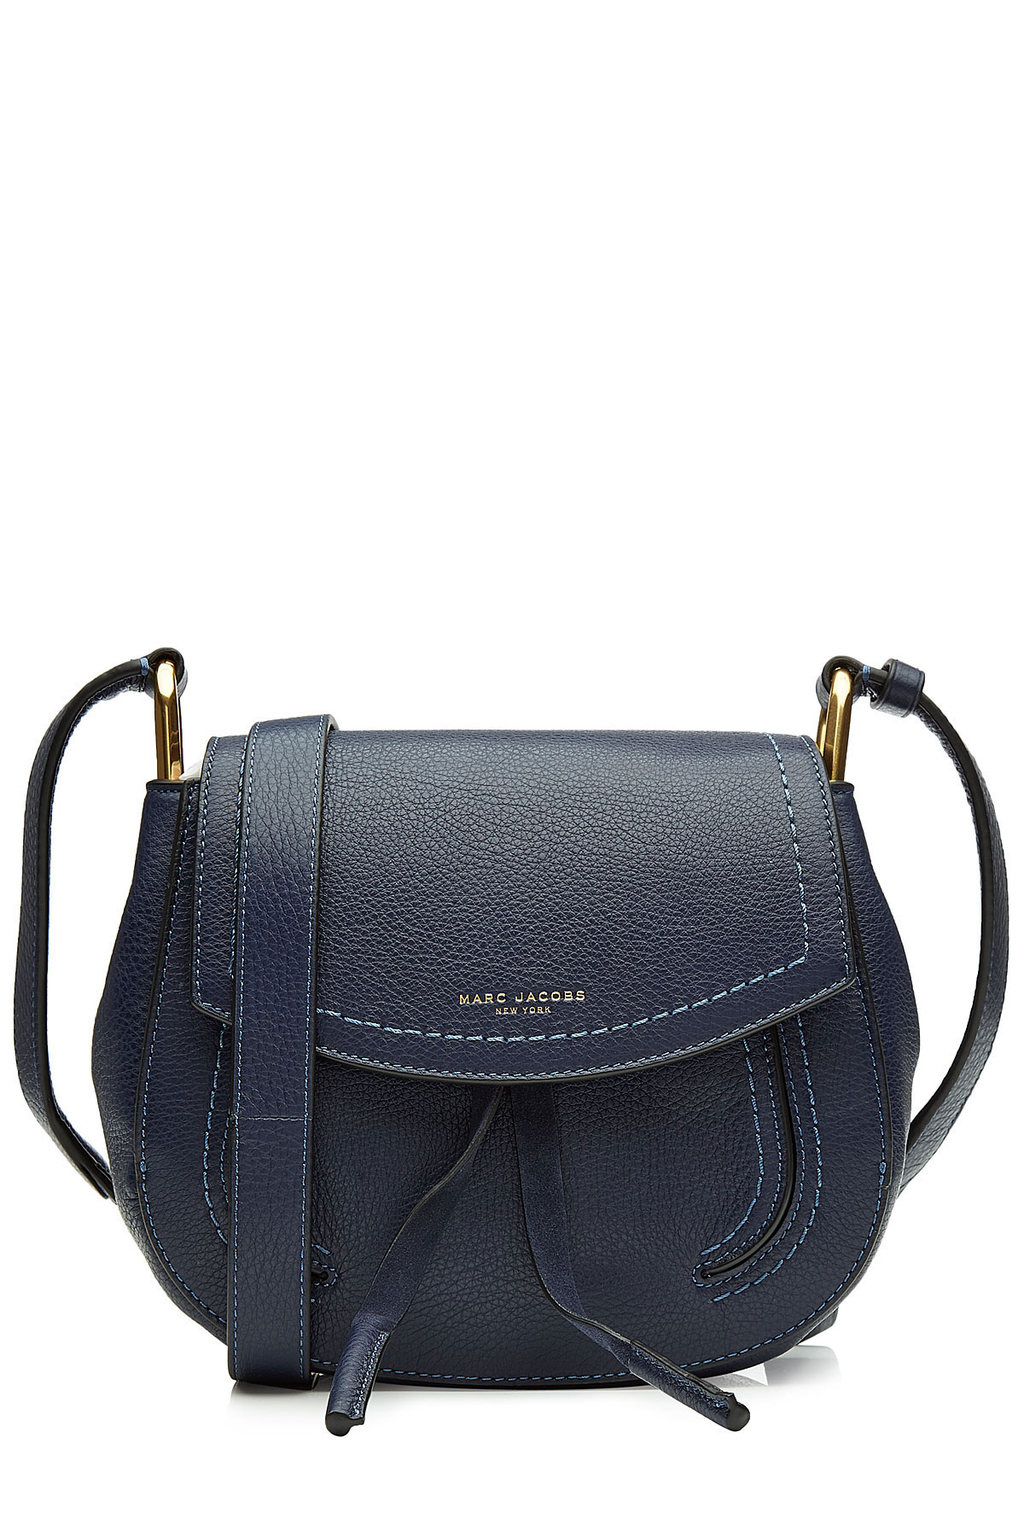 Leather Shoulder Bag Blue - predominant colour: black; occasions: casual; type of pattern: standard; style: messenger; length: across body/long; size: small; material: leather; pattern: plain; finish: plain; season: a/w 2016